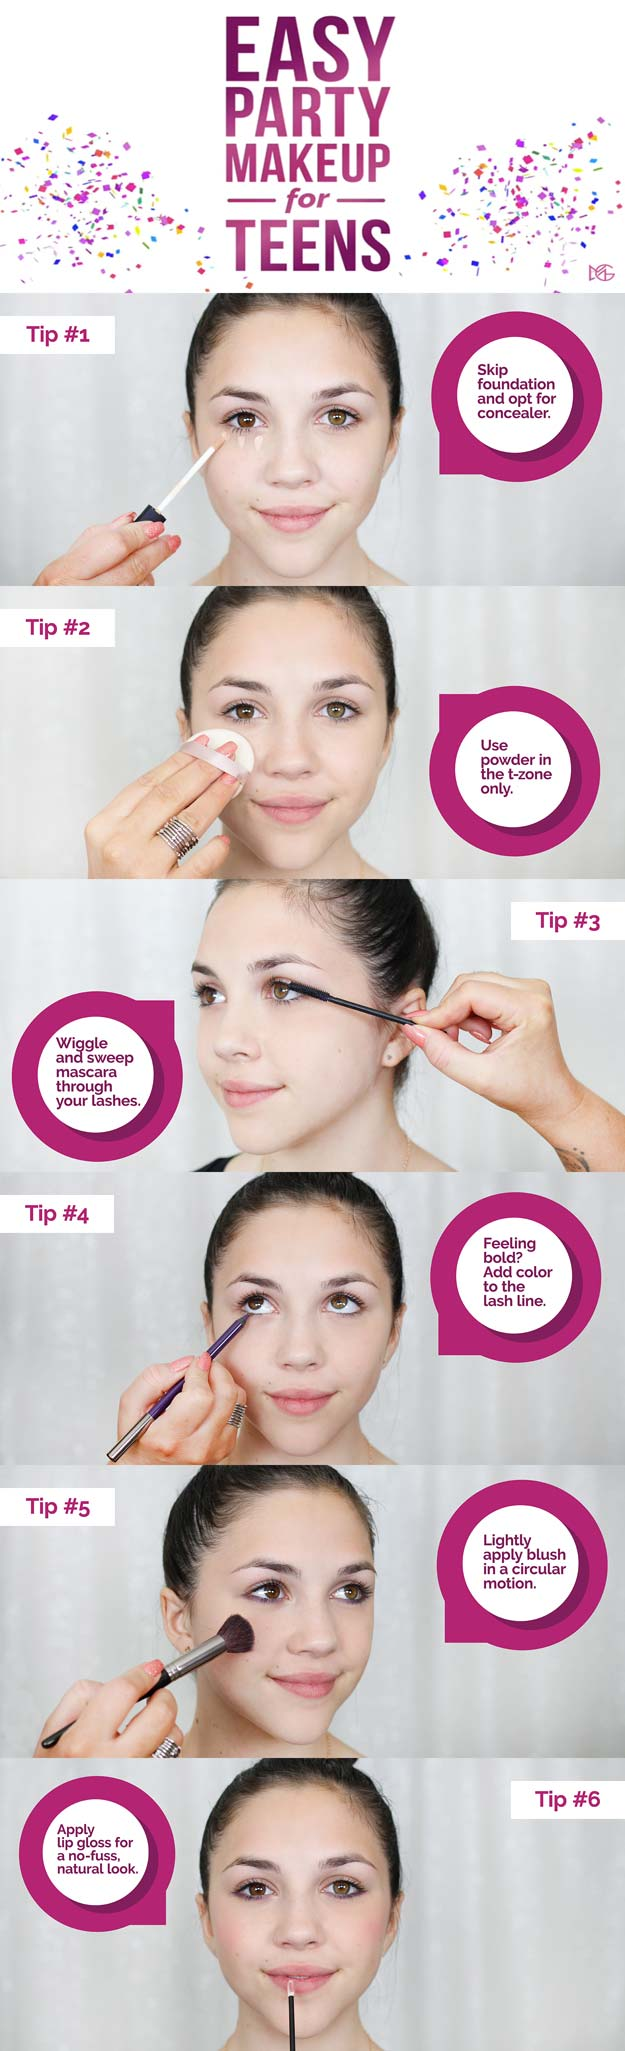 9 Cool Makeup Tutorials for Teens - DIY Projects for Teens